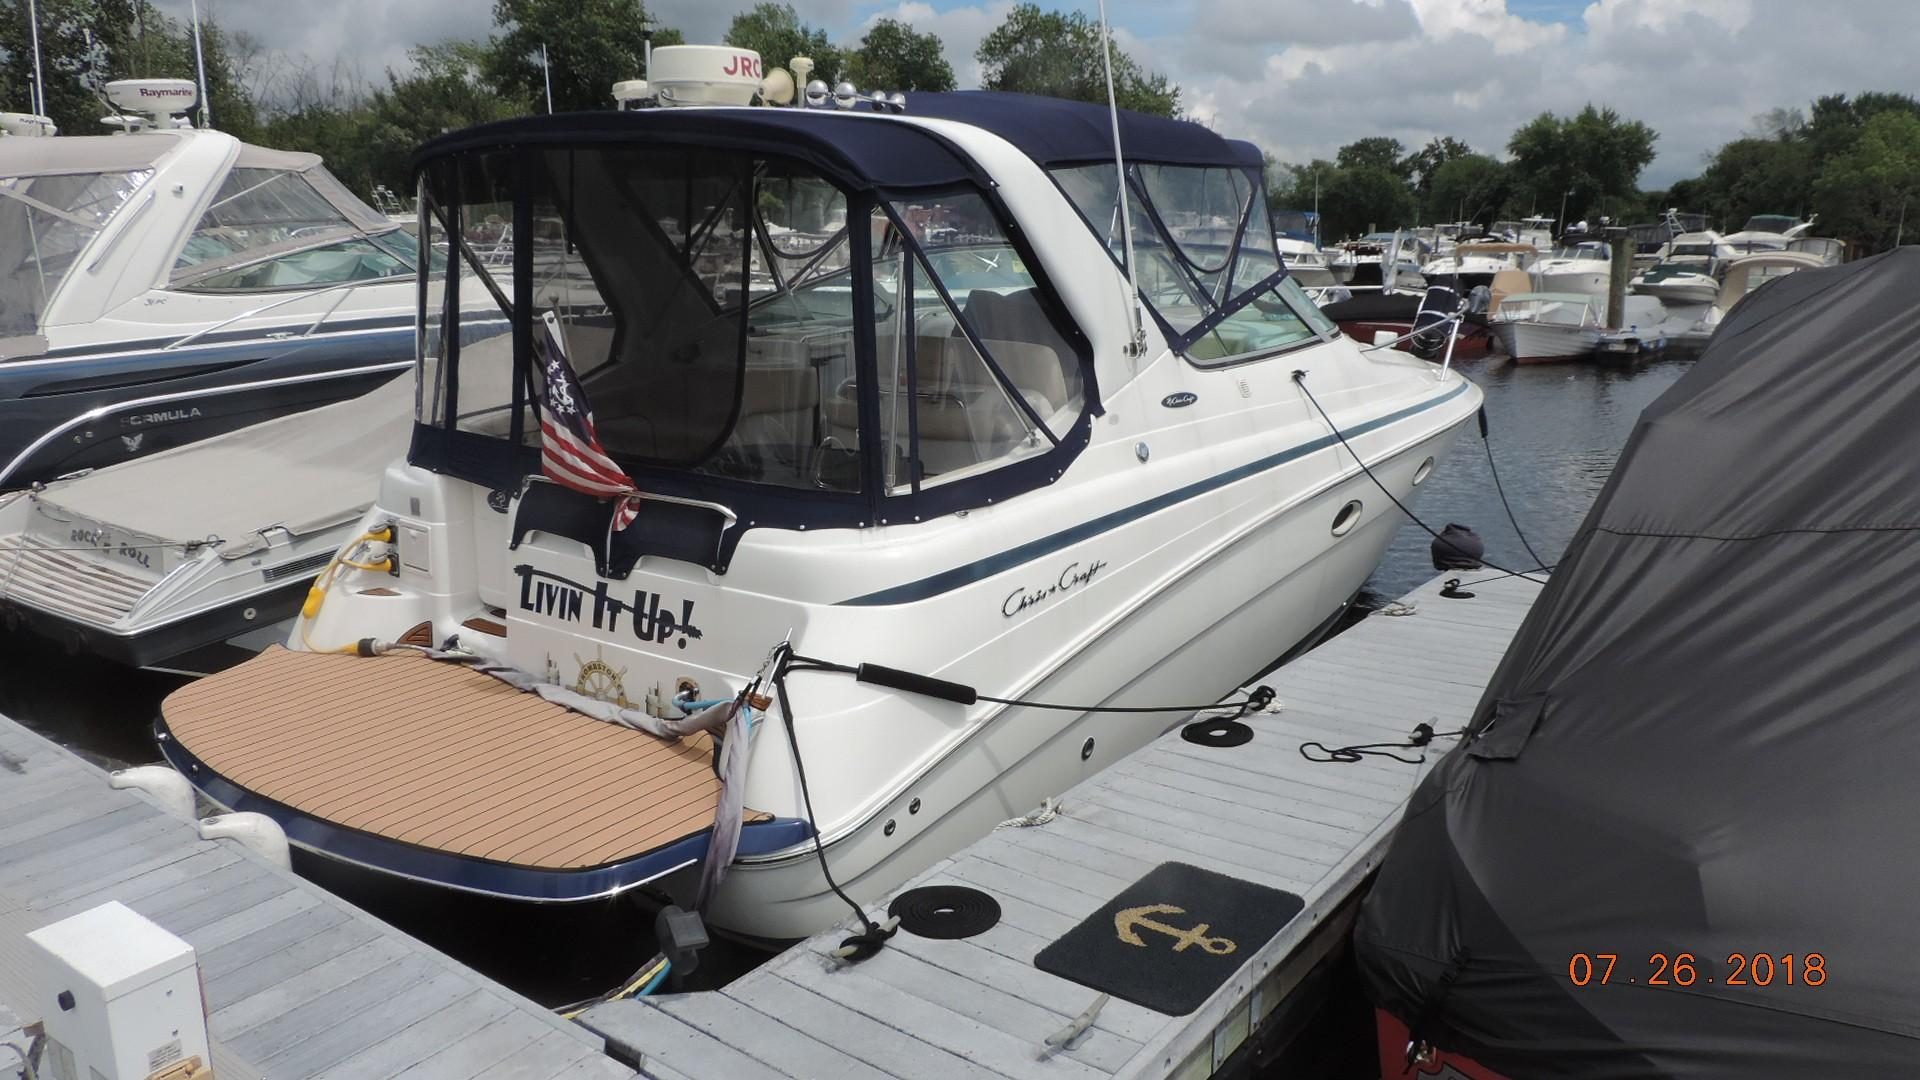 2000 Chris Craft 210 Wiring Diagram Explained Diagrams Deck Boat 328 Express Cruiser Power For Sale Www Smoker